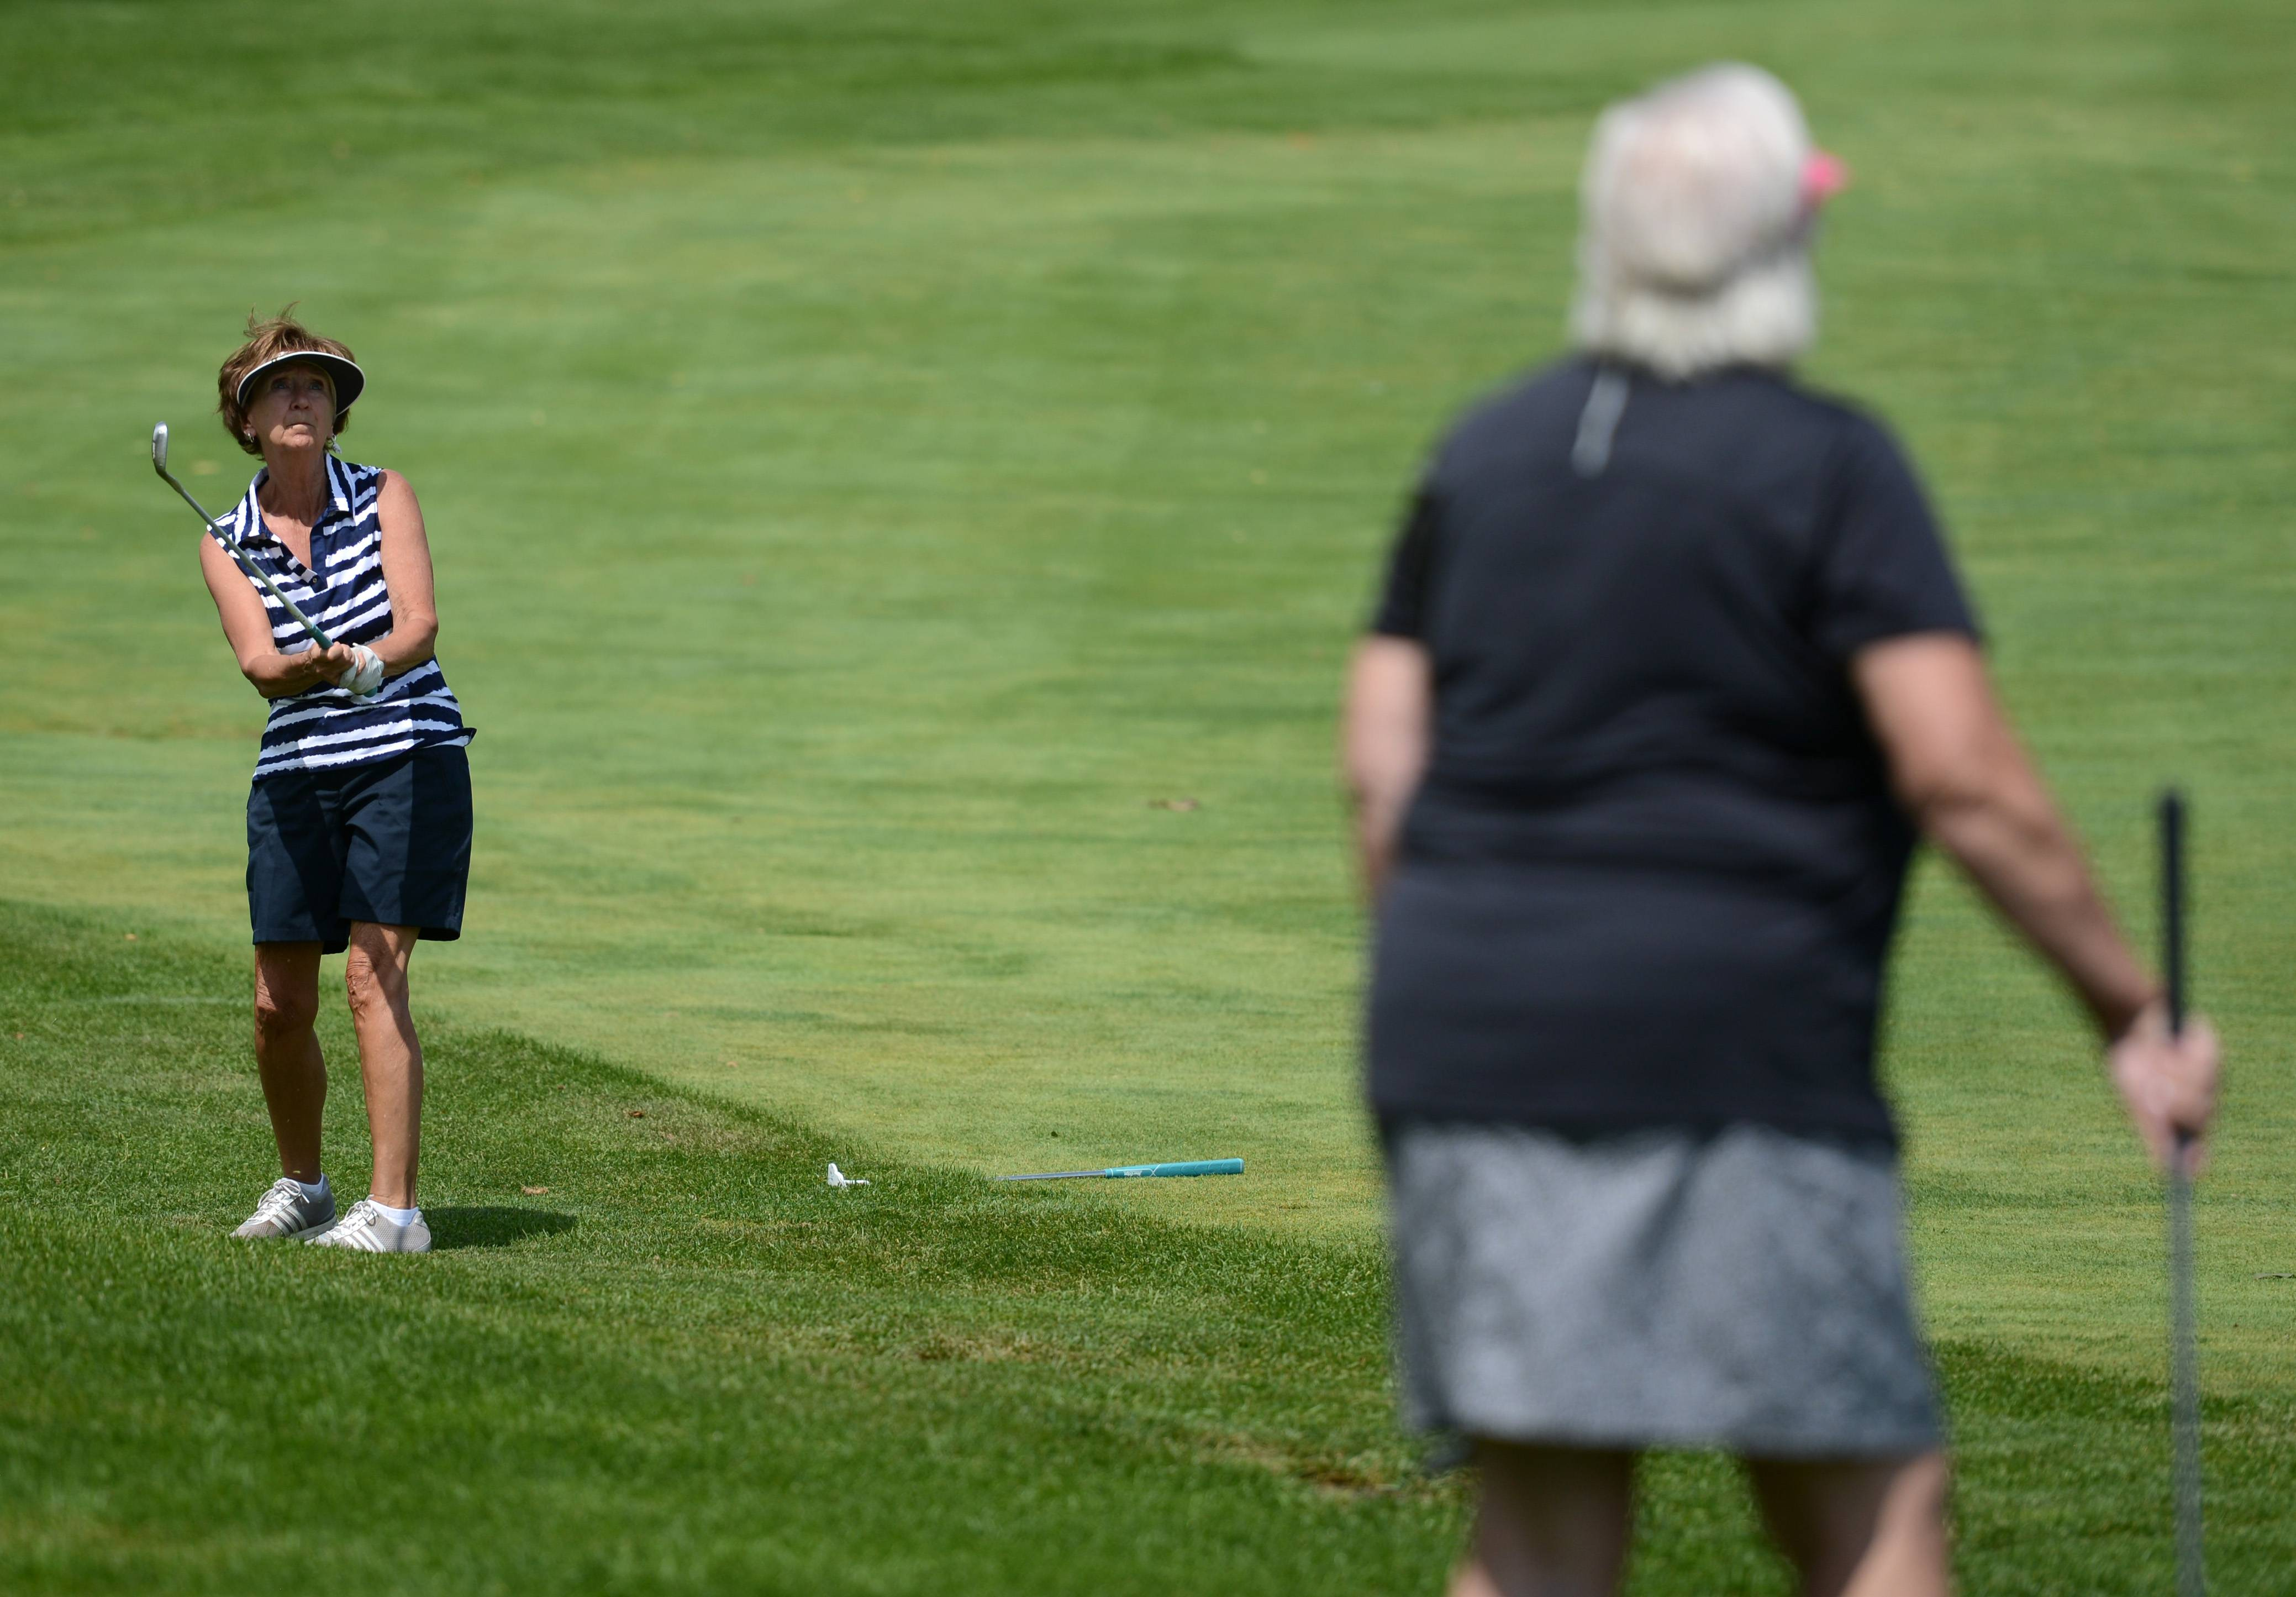 Margie Krizizke of Schaumburg, along with playing partner Judy Wanish, watch her chip as it heads toward the green during a golf outing benefiting breast cancer research at Schaumburg Golf Club Monday. Wanish is from Mishicot, Wisconsin.